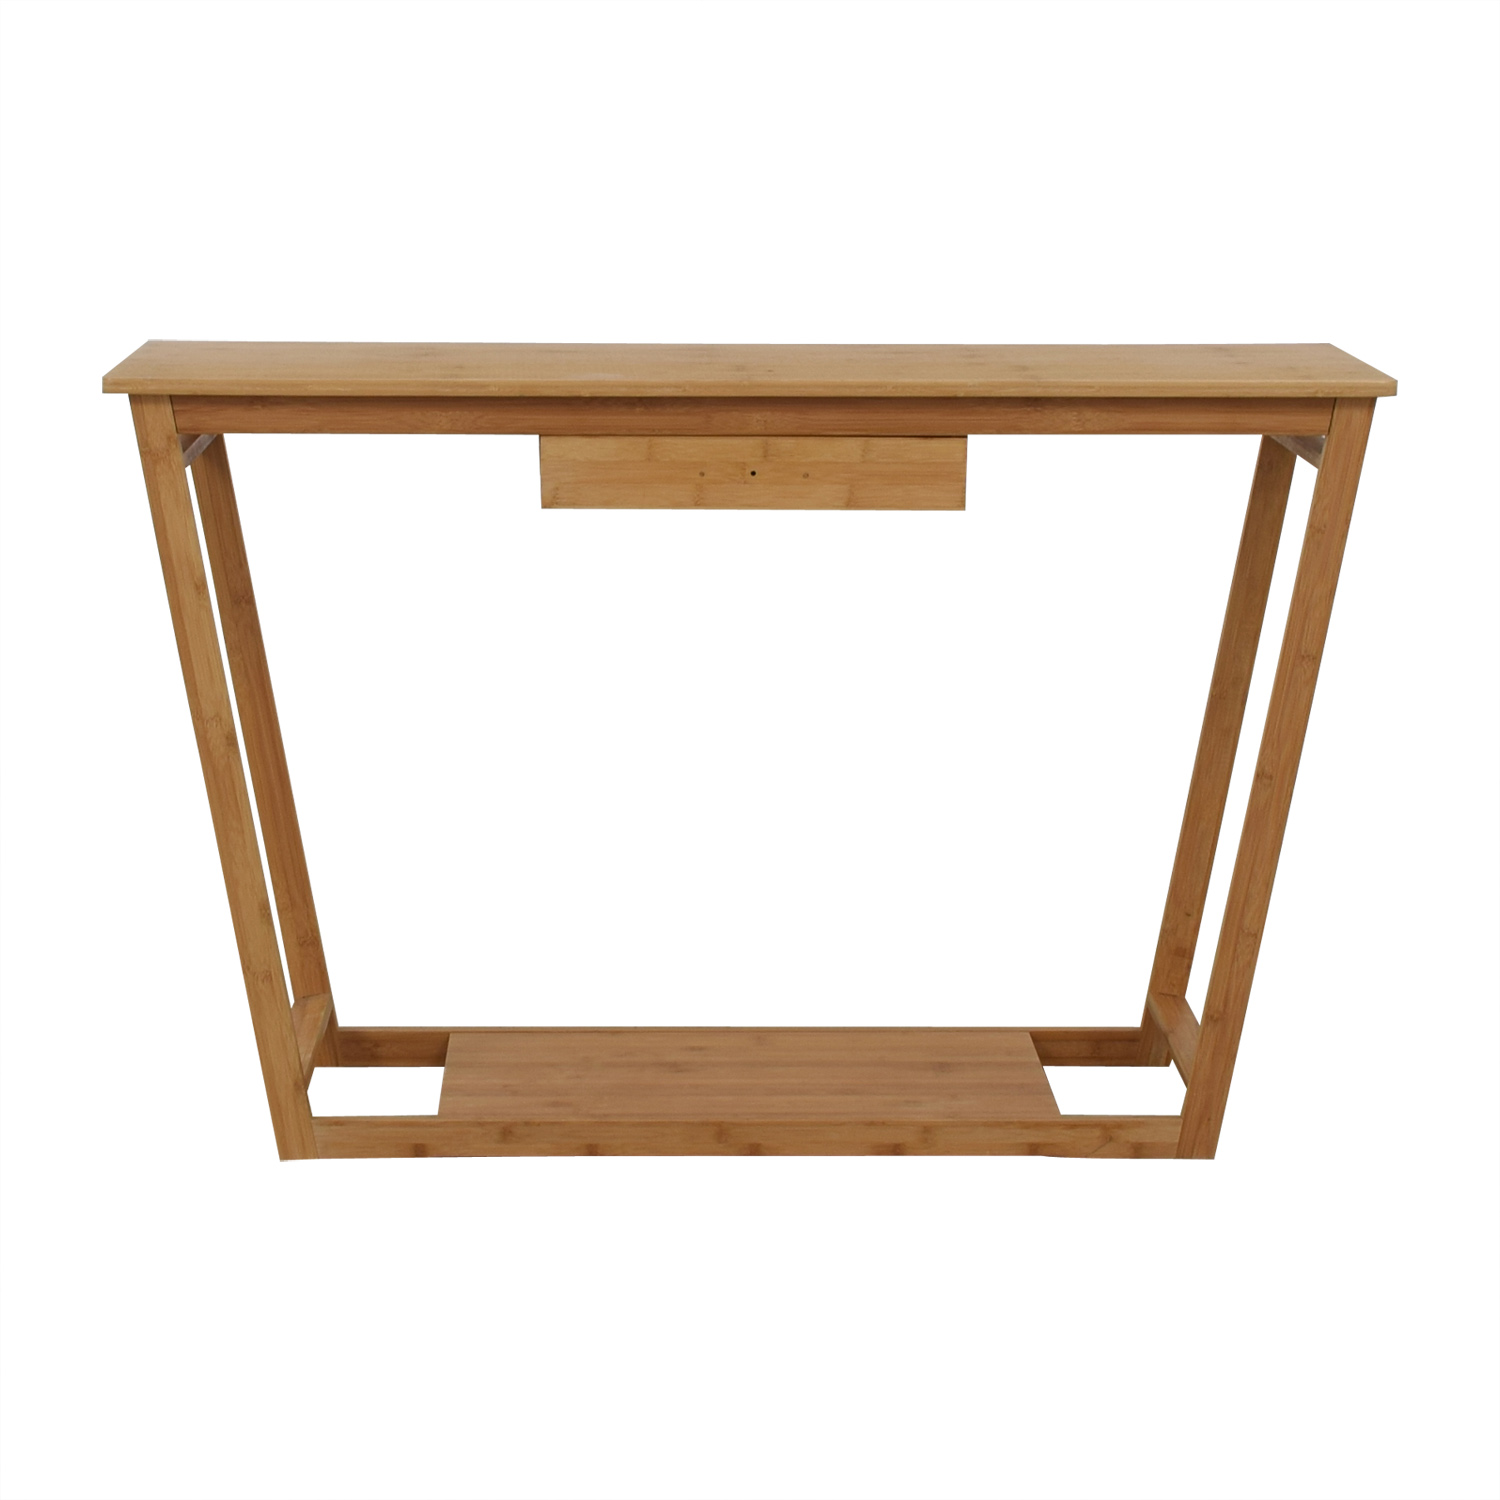 Bamboo Wood Single Drawer Desk or Table nyc